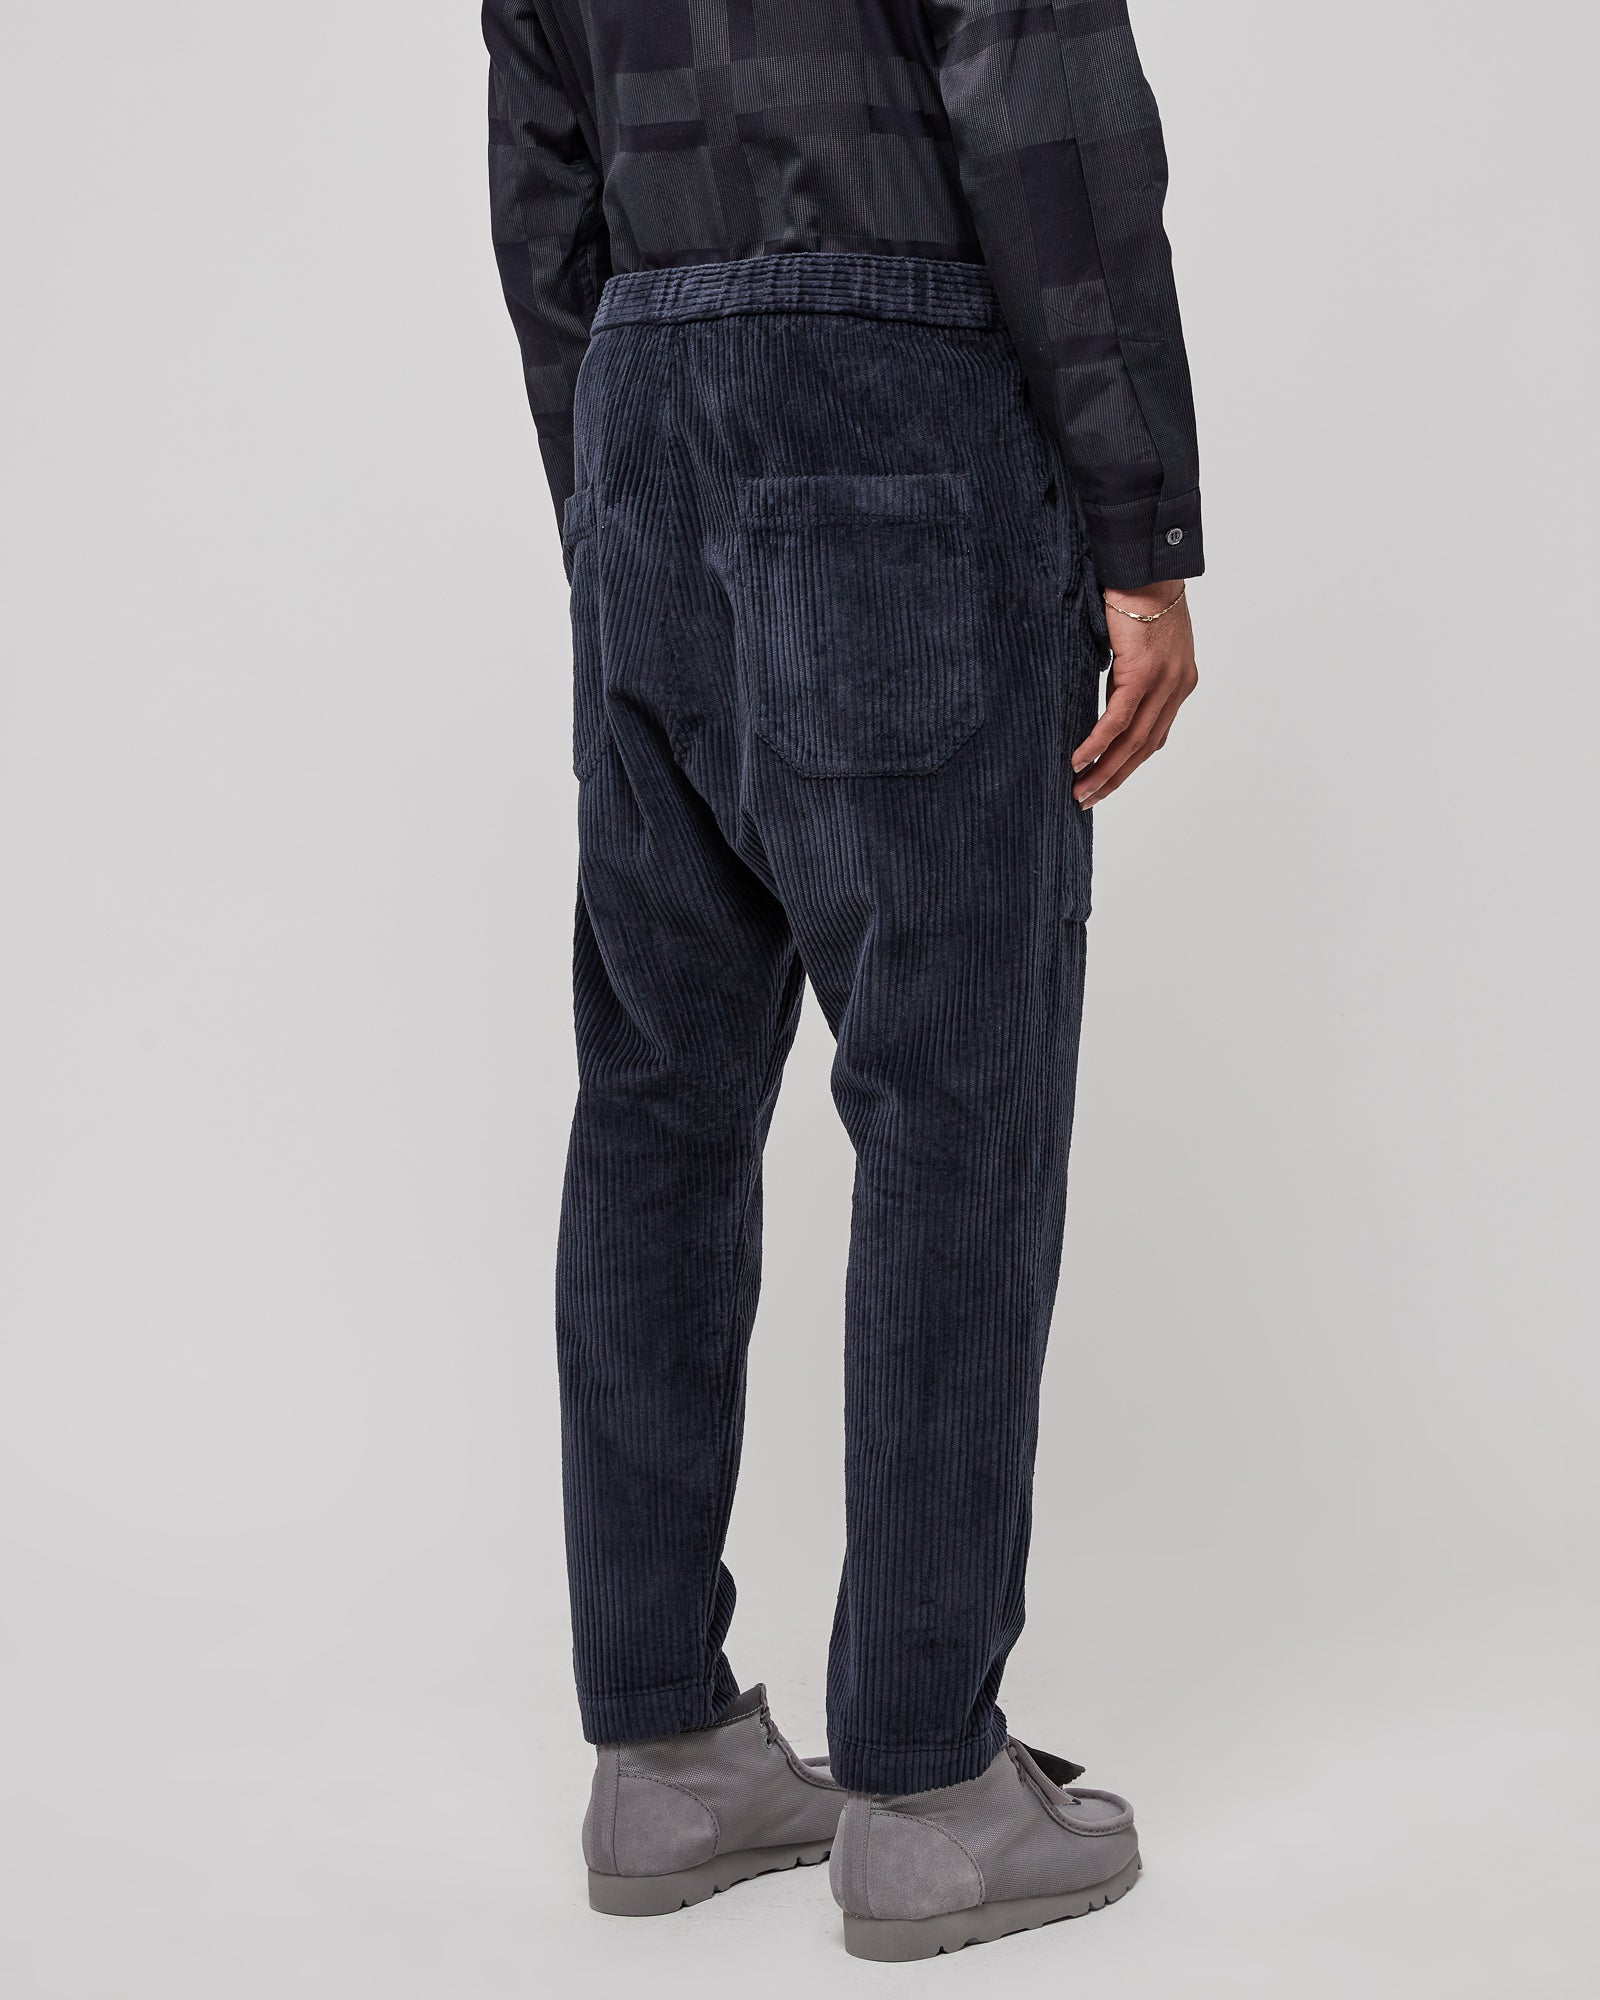 Riofondo Trousers in Blue